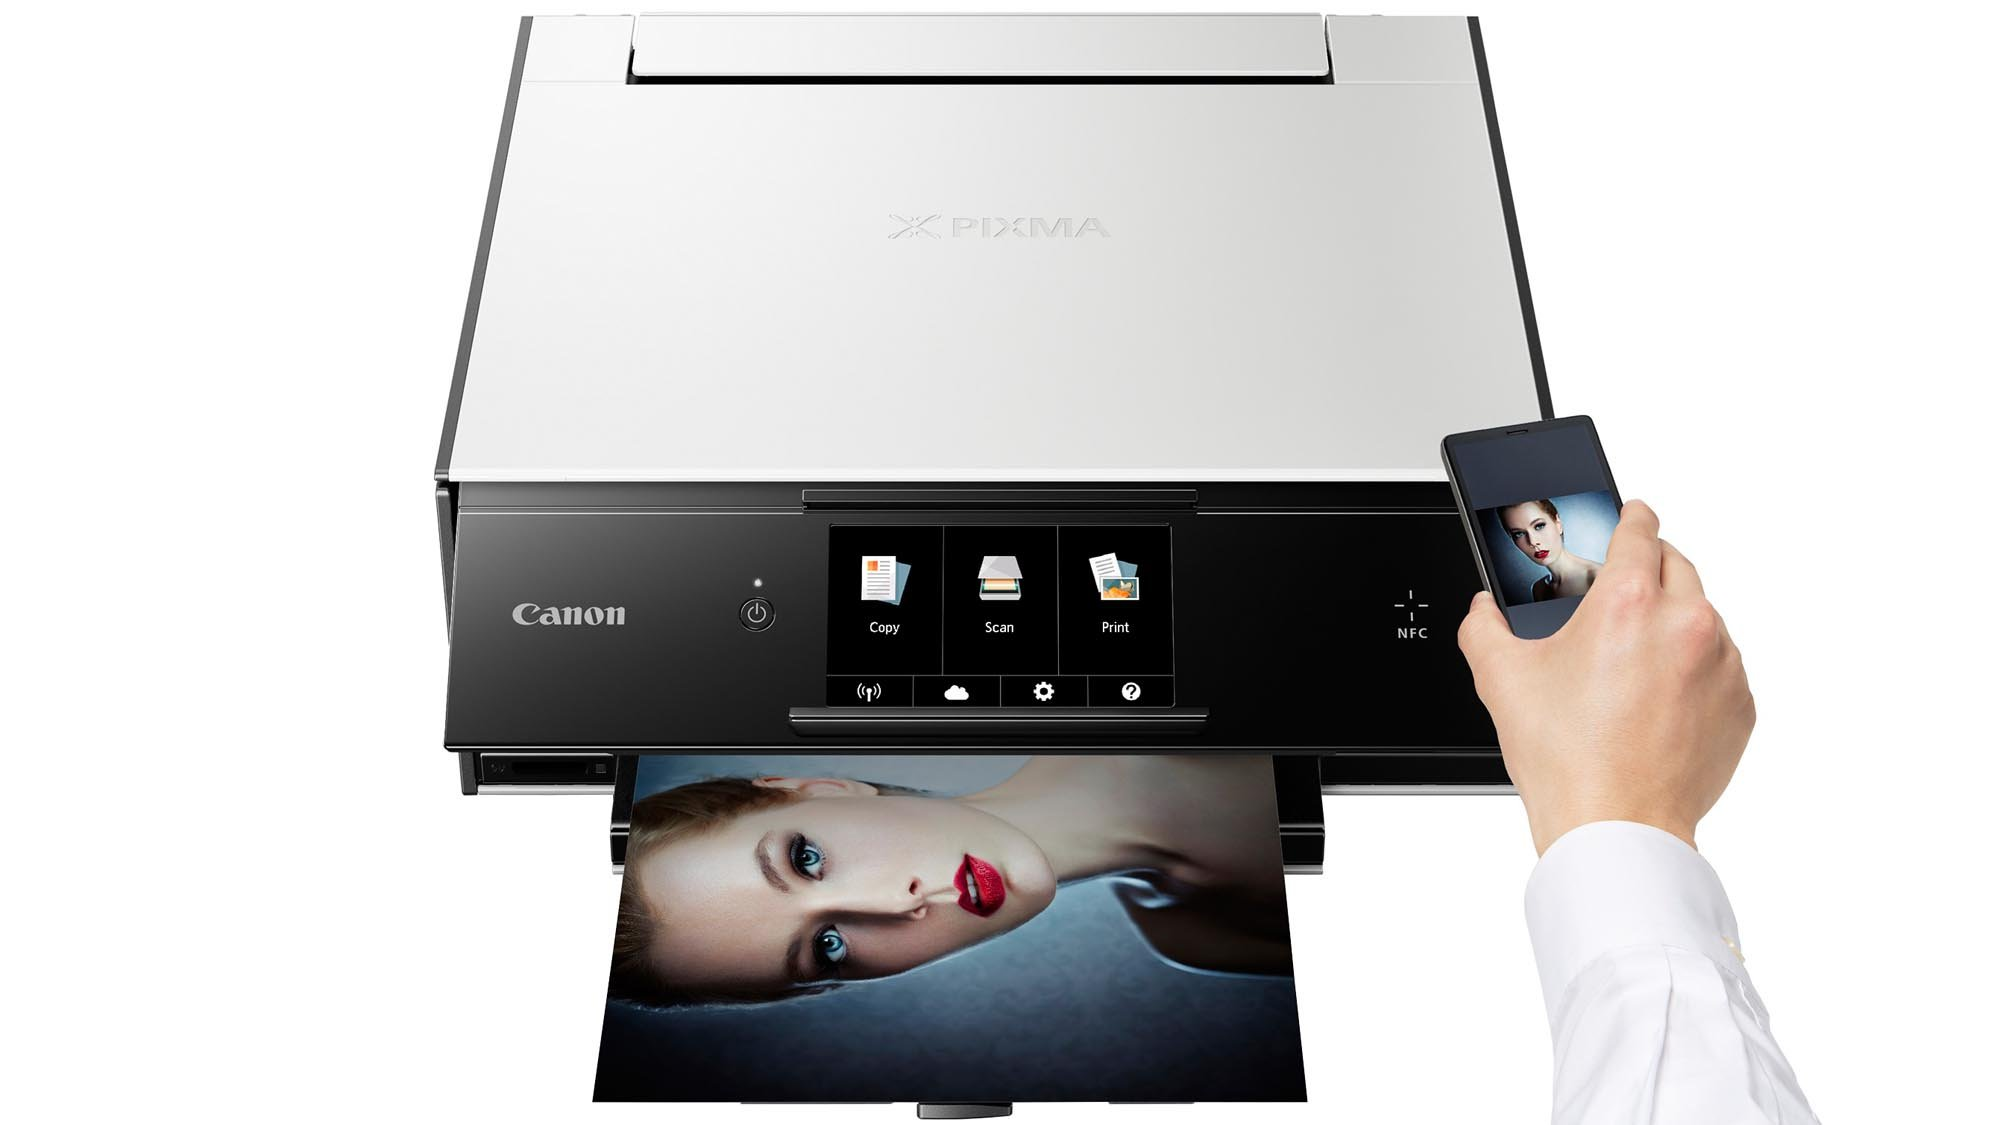 Best printer 2018 the best inkjet and laser printers for office or budget photo printers have come on in leaps and bounds but if you can afford it the pixma ts9050 is capable of breathtaking prints m4hsunfo